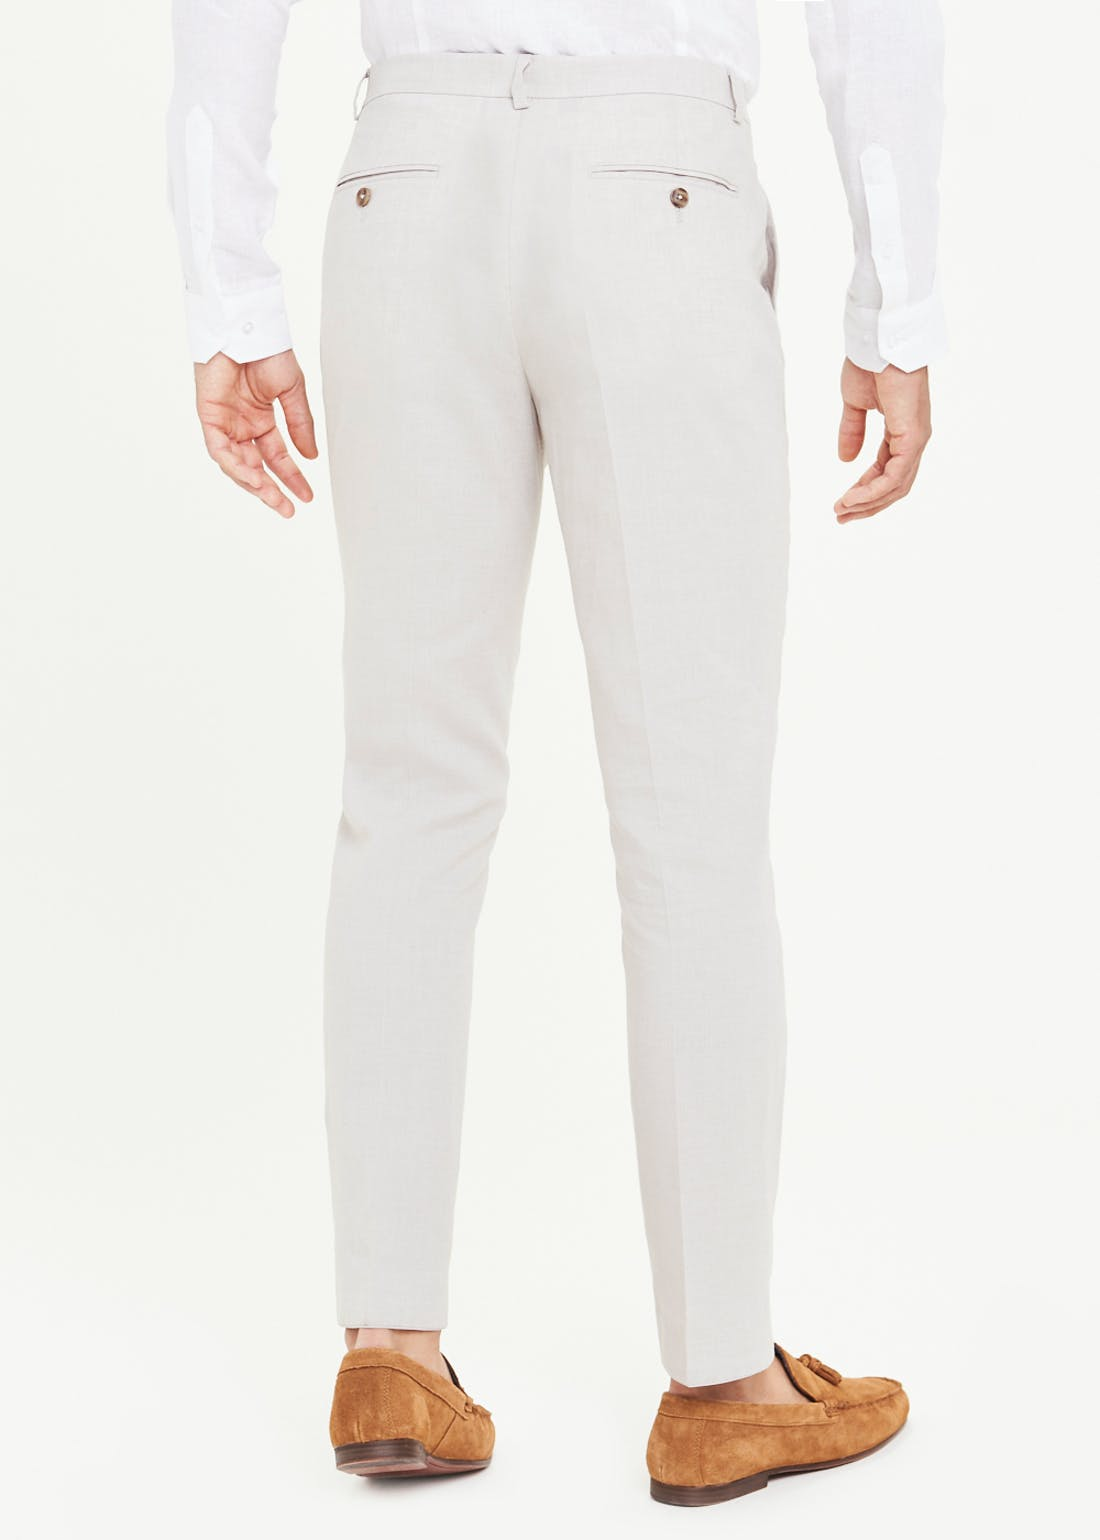 Taylor & Wright Moss Slim Fit Linen Suit Trousers